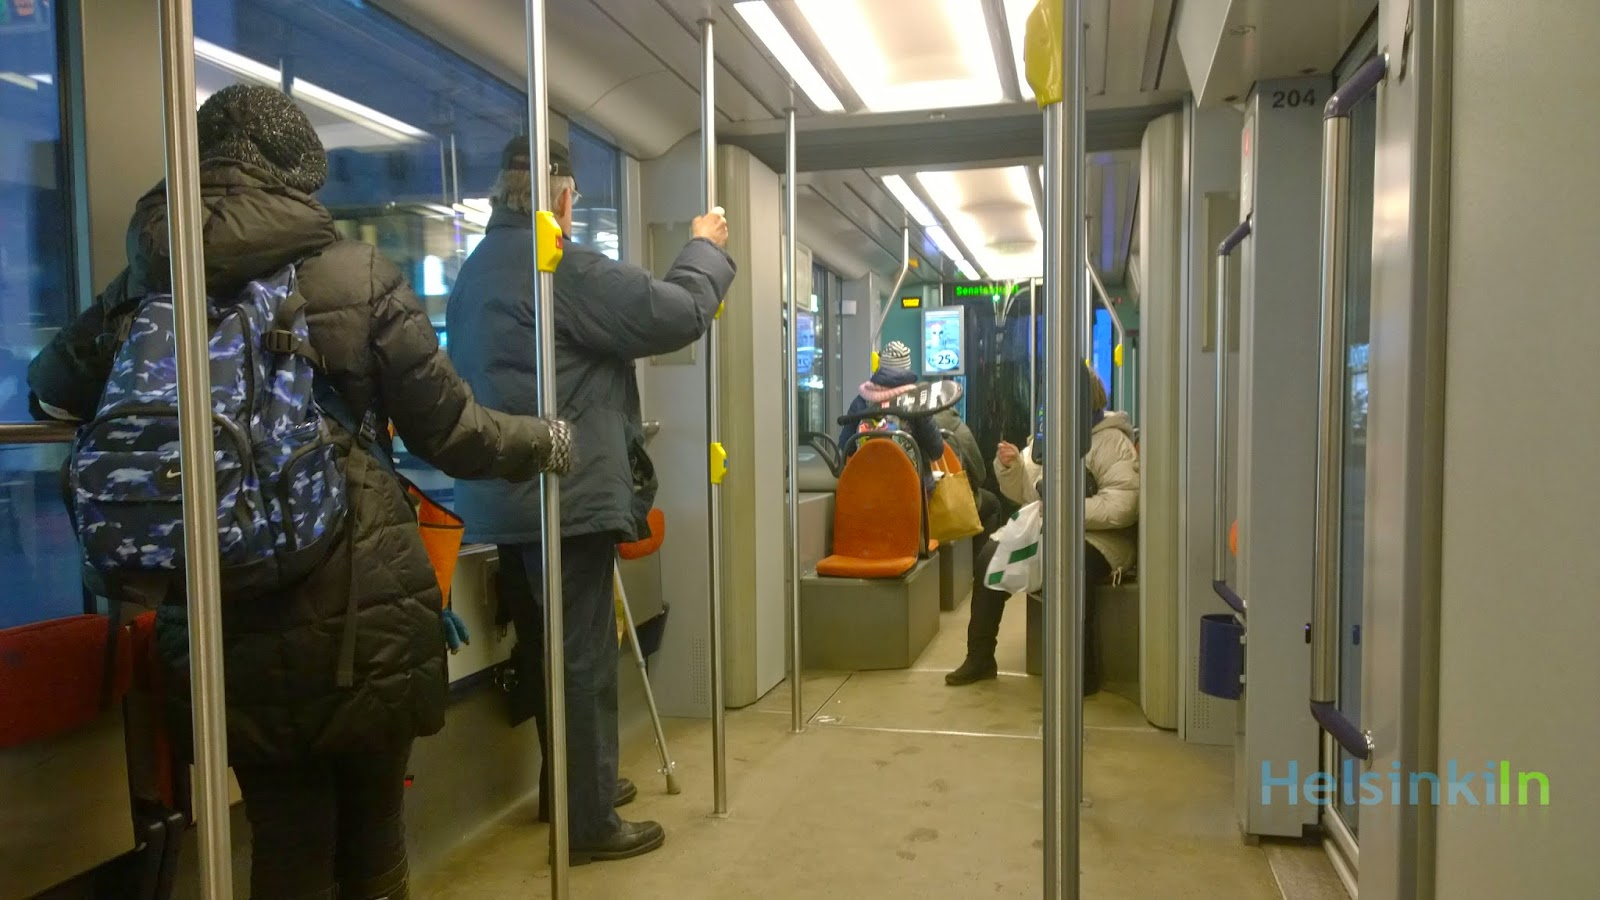 On the tram in Helsinki